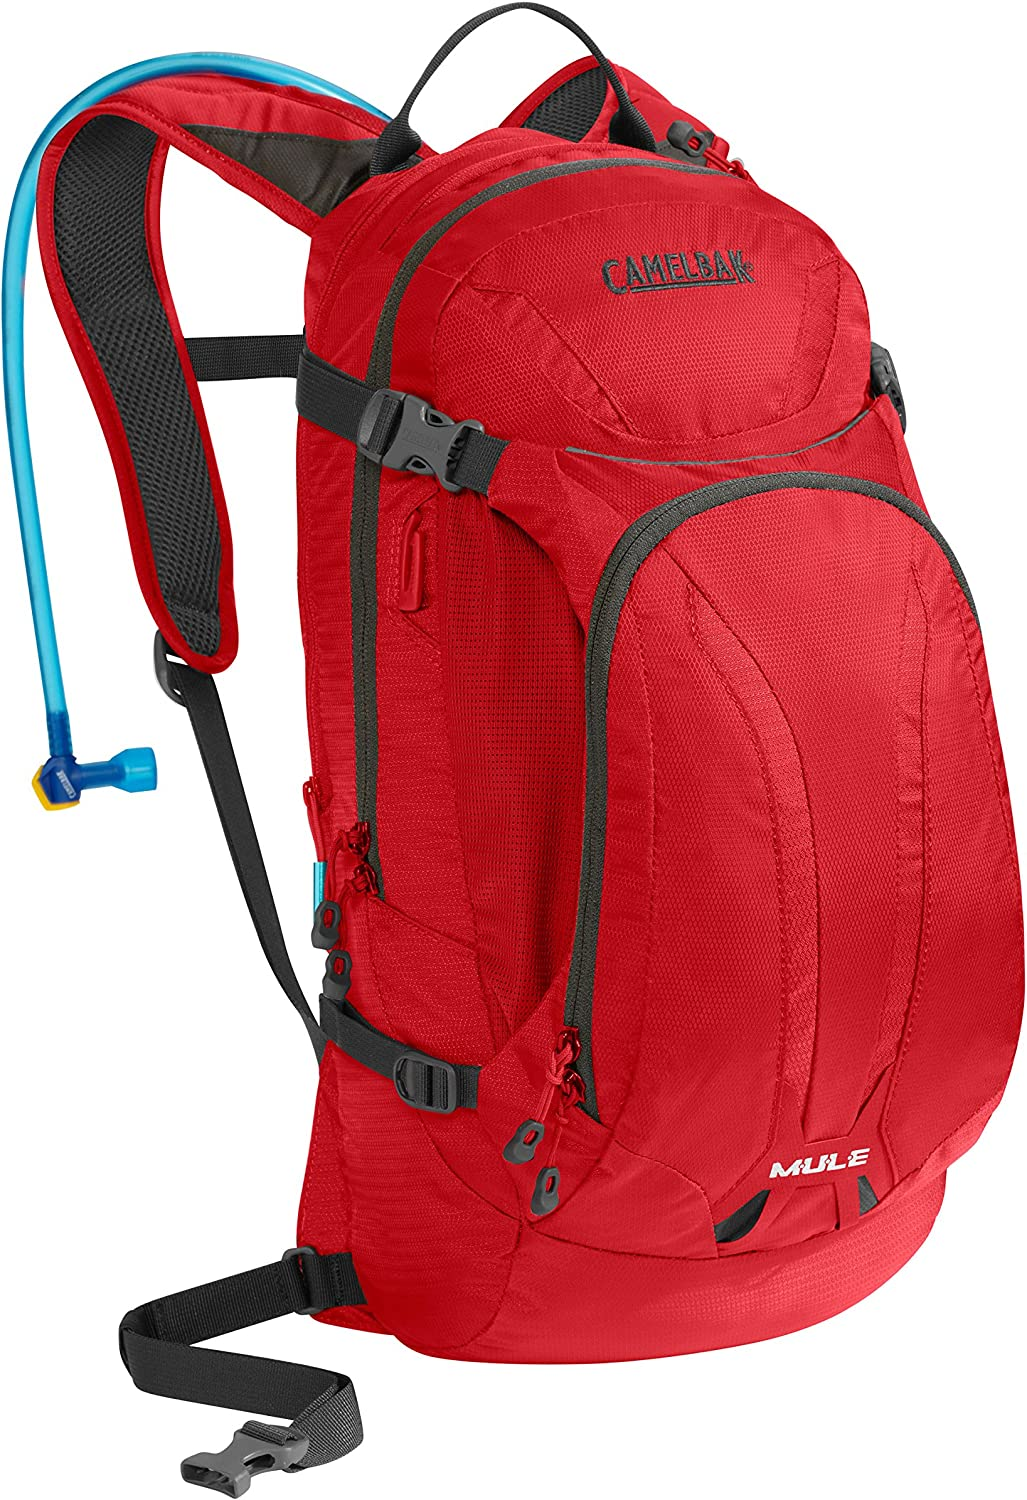 CamelBak M.U.L.E. Hydration Pack Discontinued Model